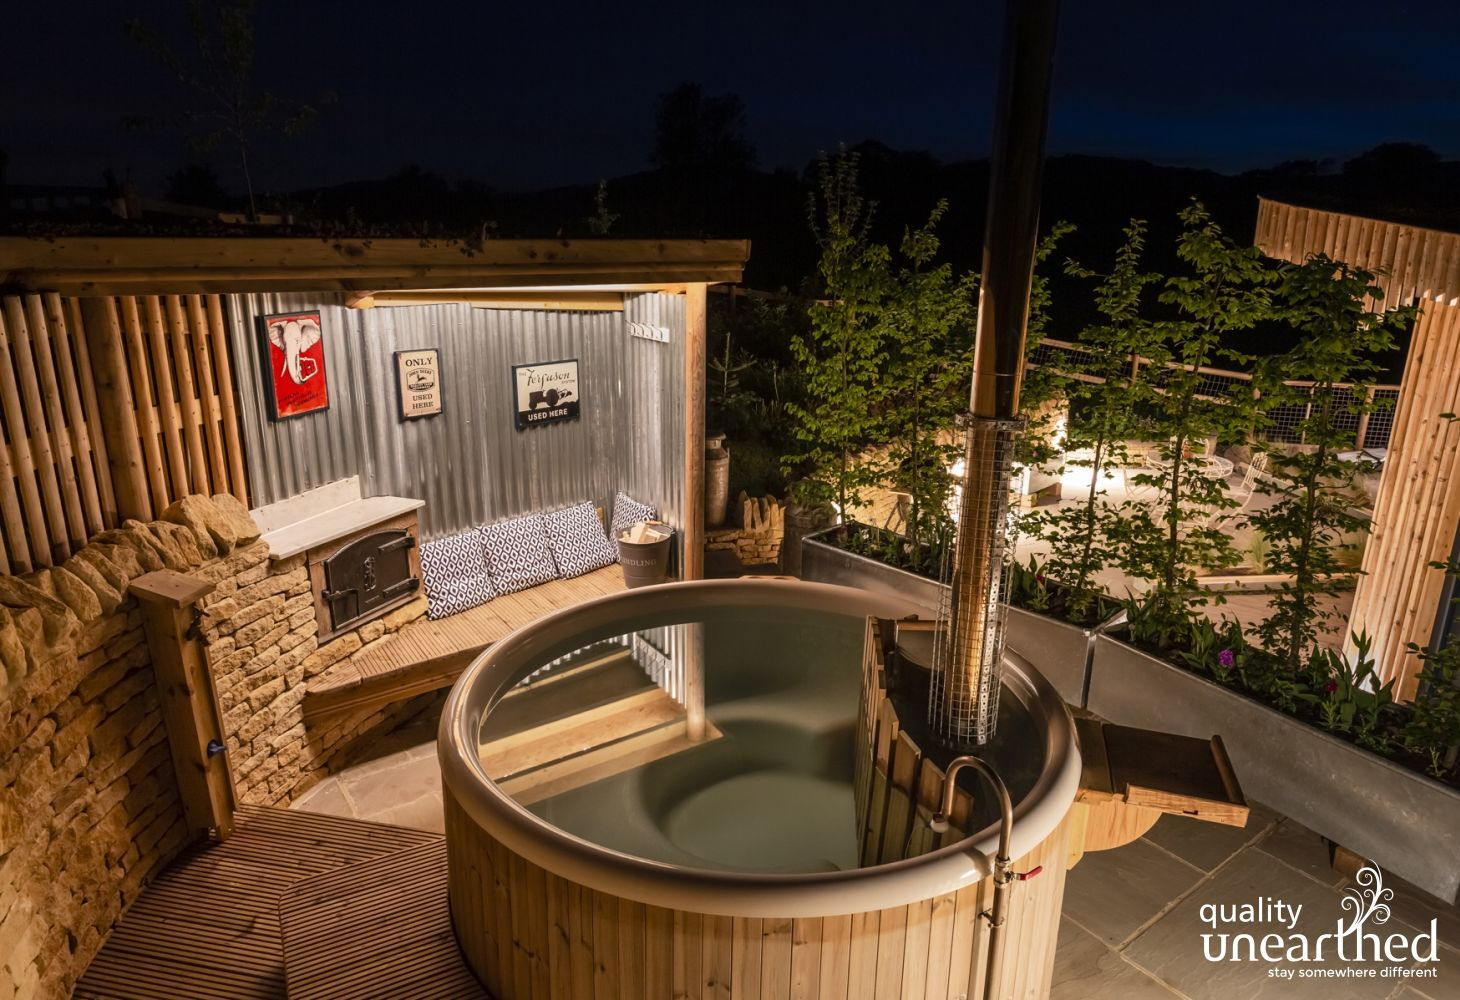 The wood fire hot tub and pizza oven on the terrace of the glamping lodge beckons you for a dip and some star gazing